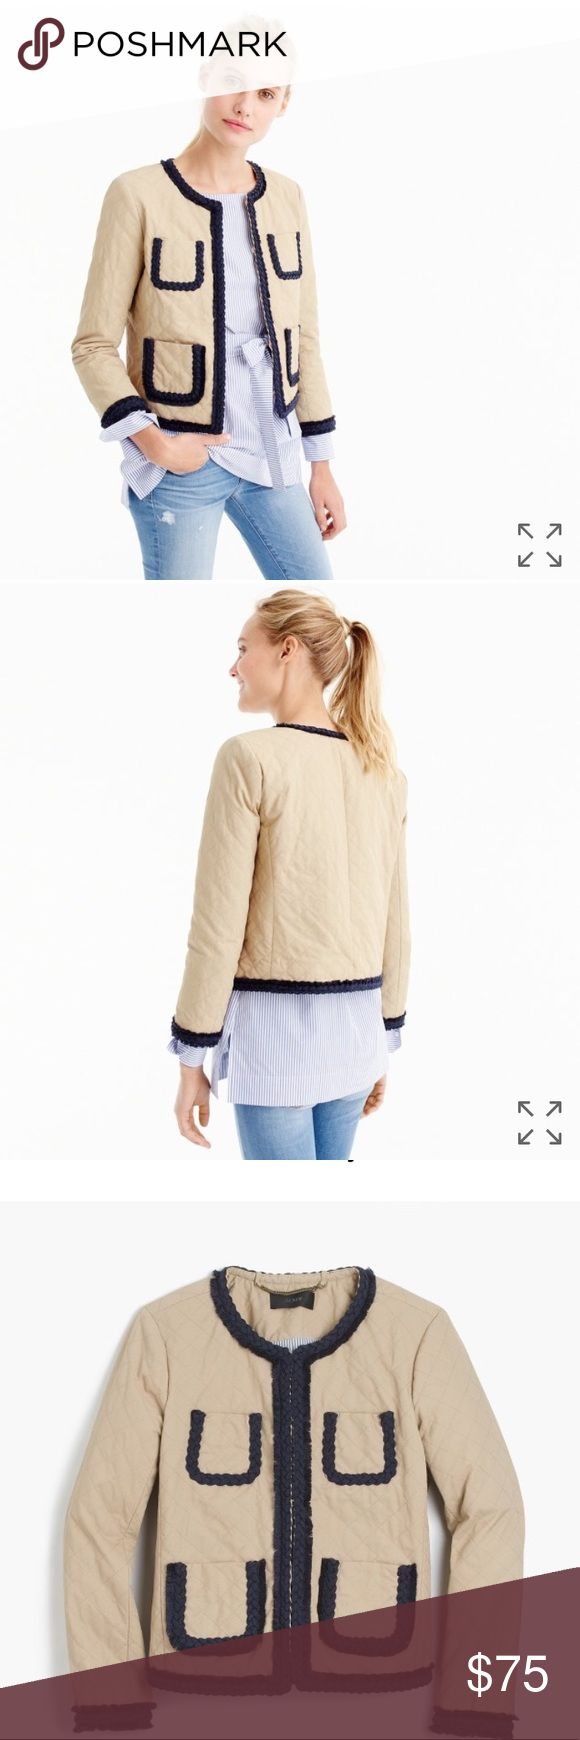 """NWT J.Crew Quilted Safari Jacket, 0 New with tags, never worn  Body length: 20 3/4"""". Sleeve length: 30 1/4"""". Hits at waist.                                                               Cotton/poly. Pockets. Lined. Dry clean. J. Crew Jackets & Coats Blazers"""